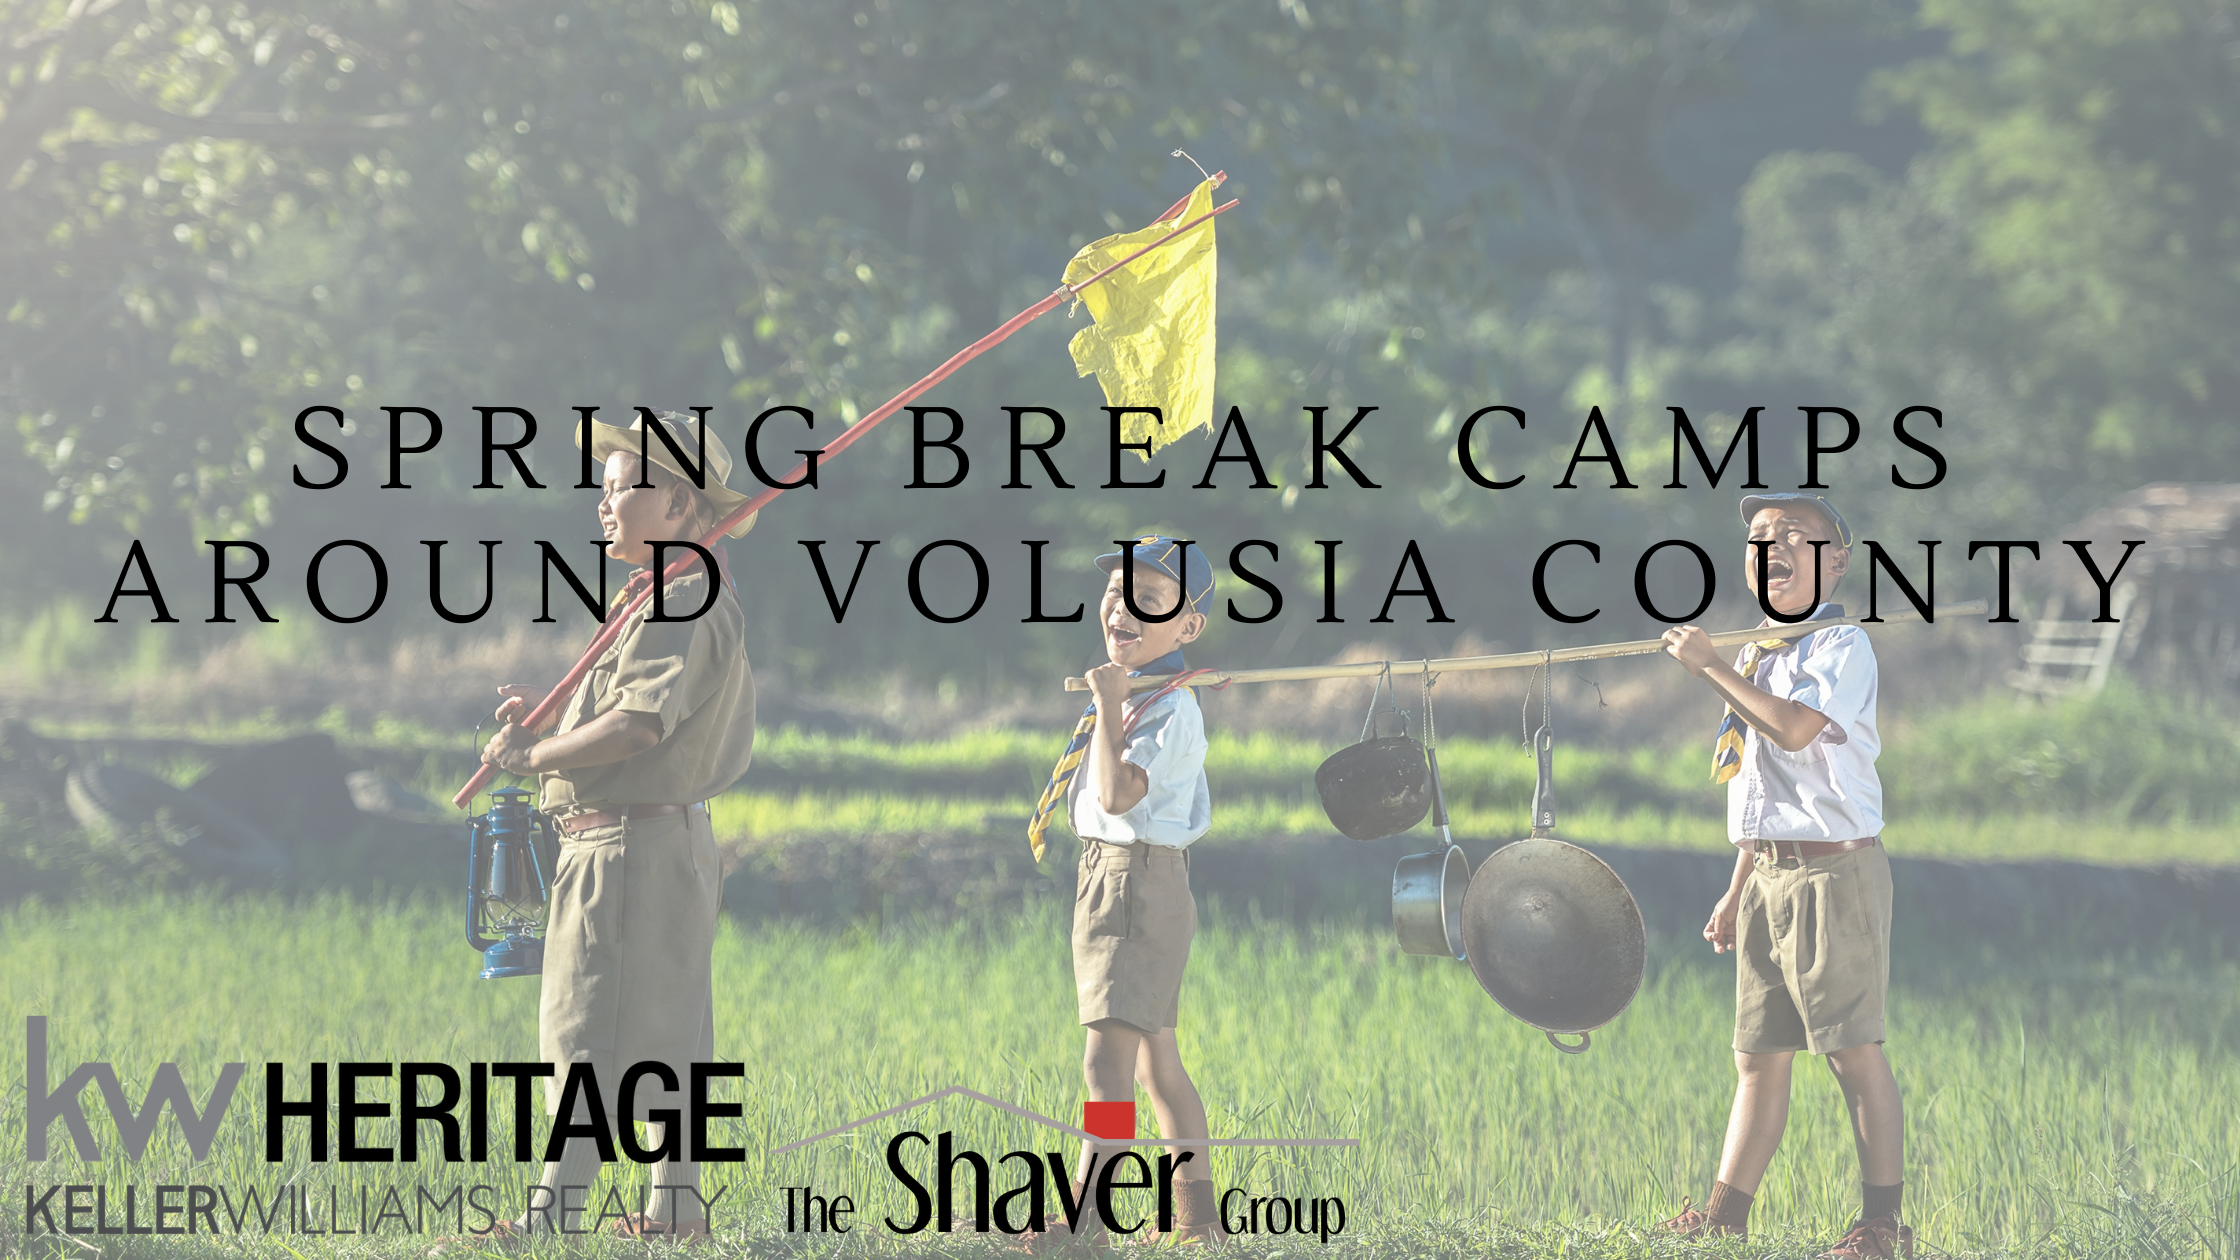 SPRING BREAK CAMPS AROUND VOLUSIA COUNTY